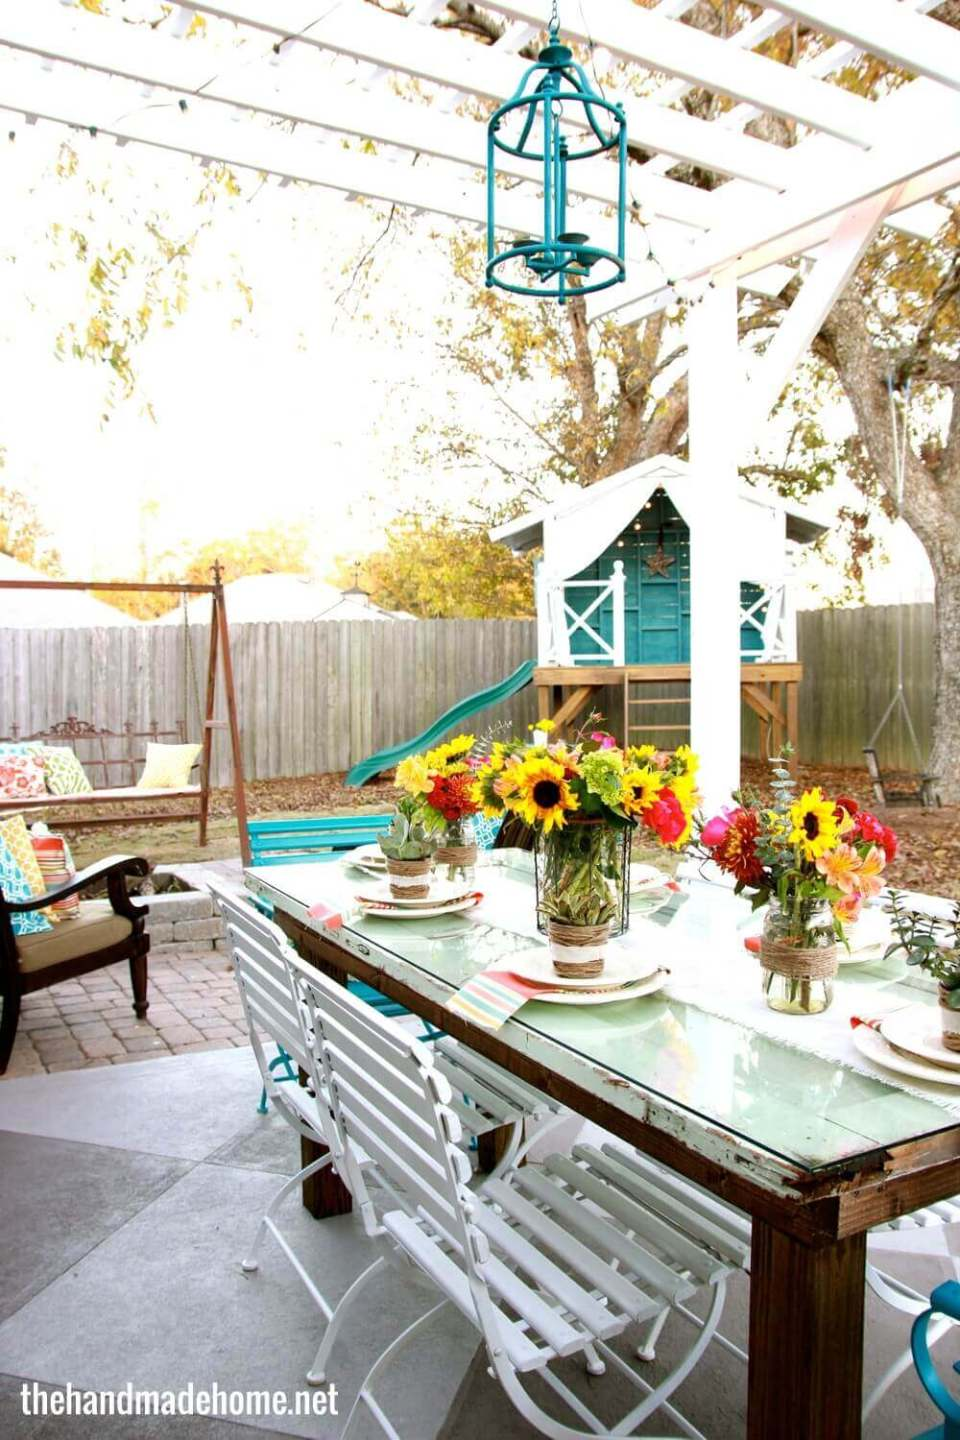 Old Doors make Elegant Dining Tables | Creative Repurposed Old Door Ideas & Projects For Your Backyard